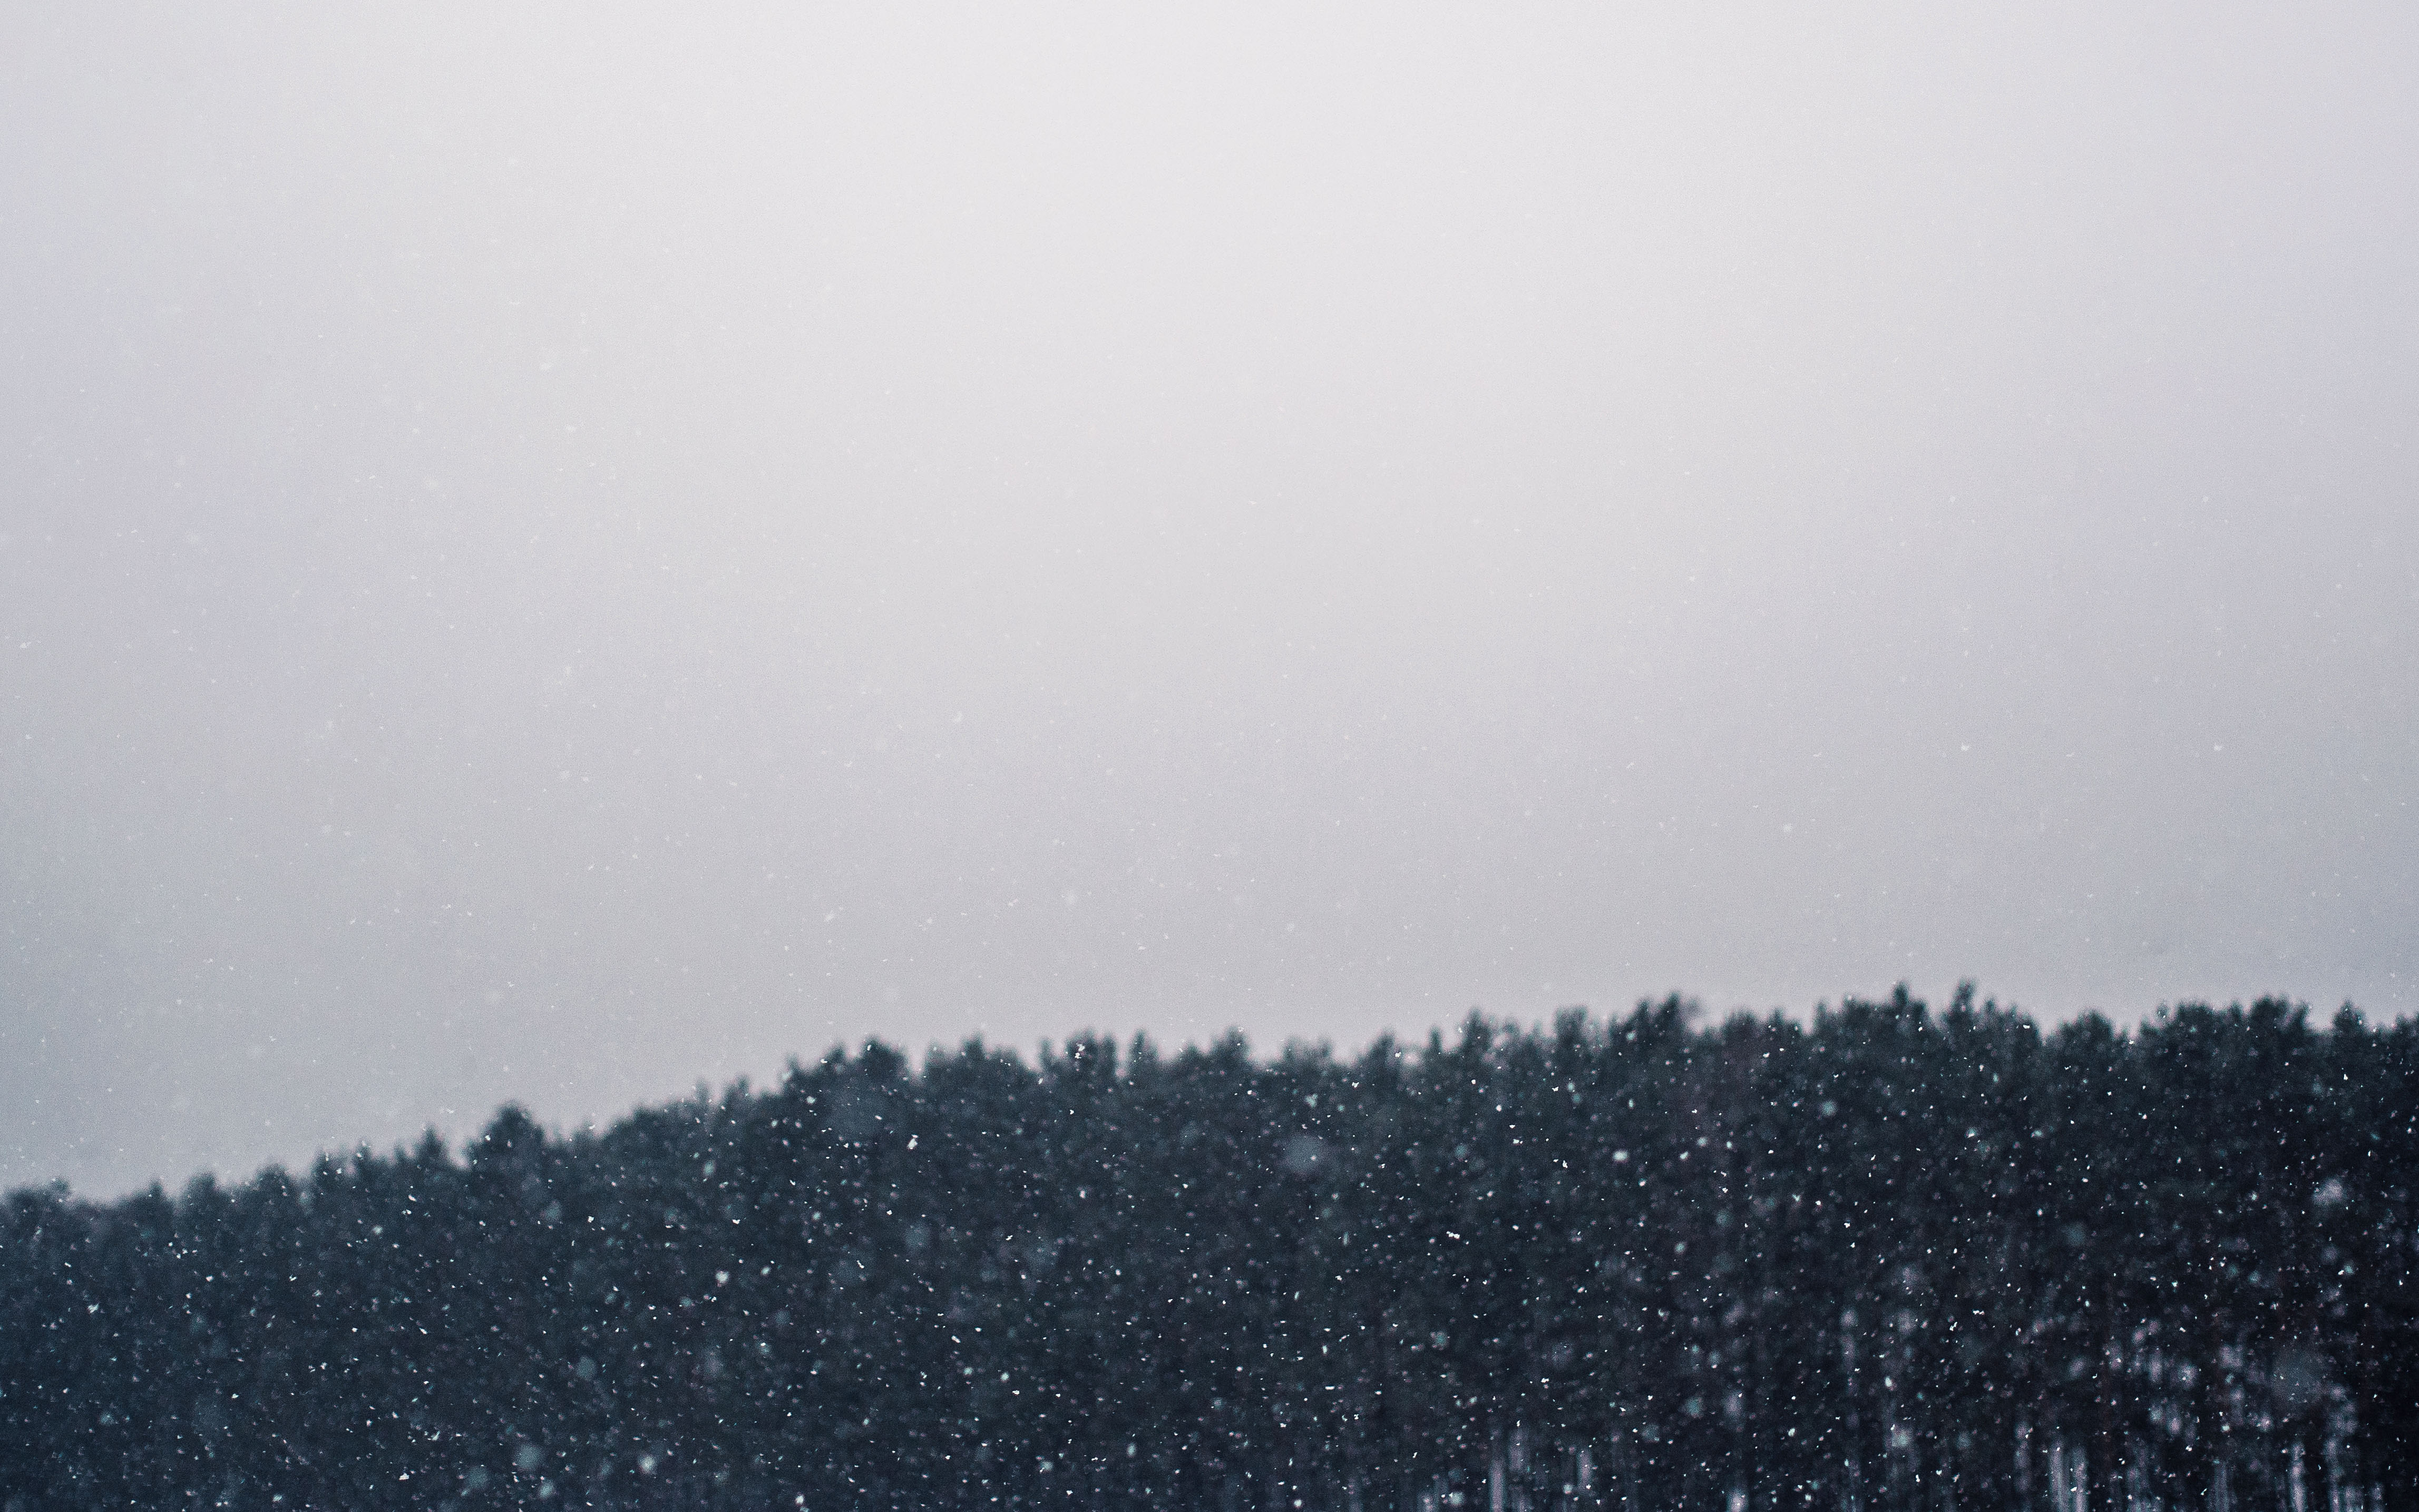 Winter drizzle, rain, winter, trees, pines, forest, mountains